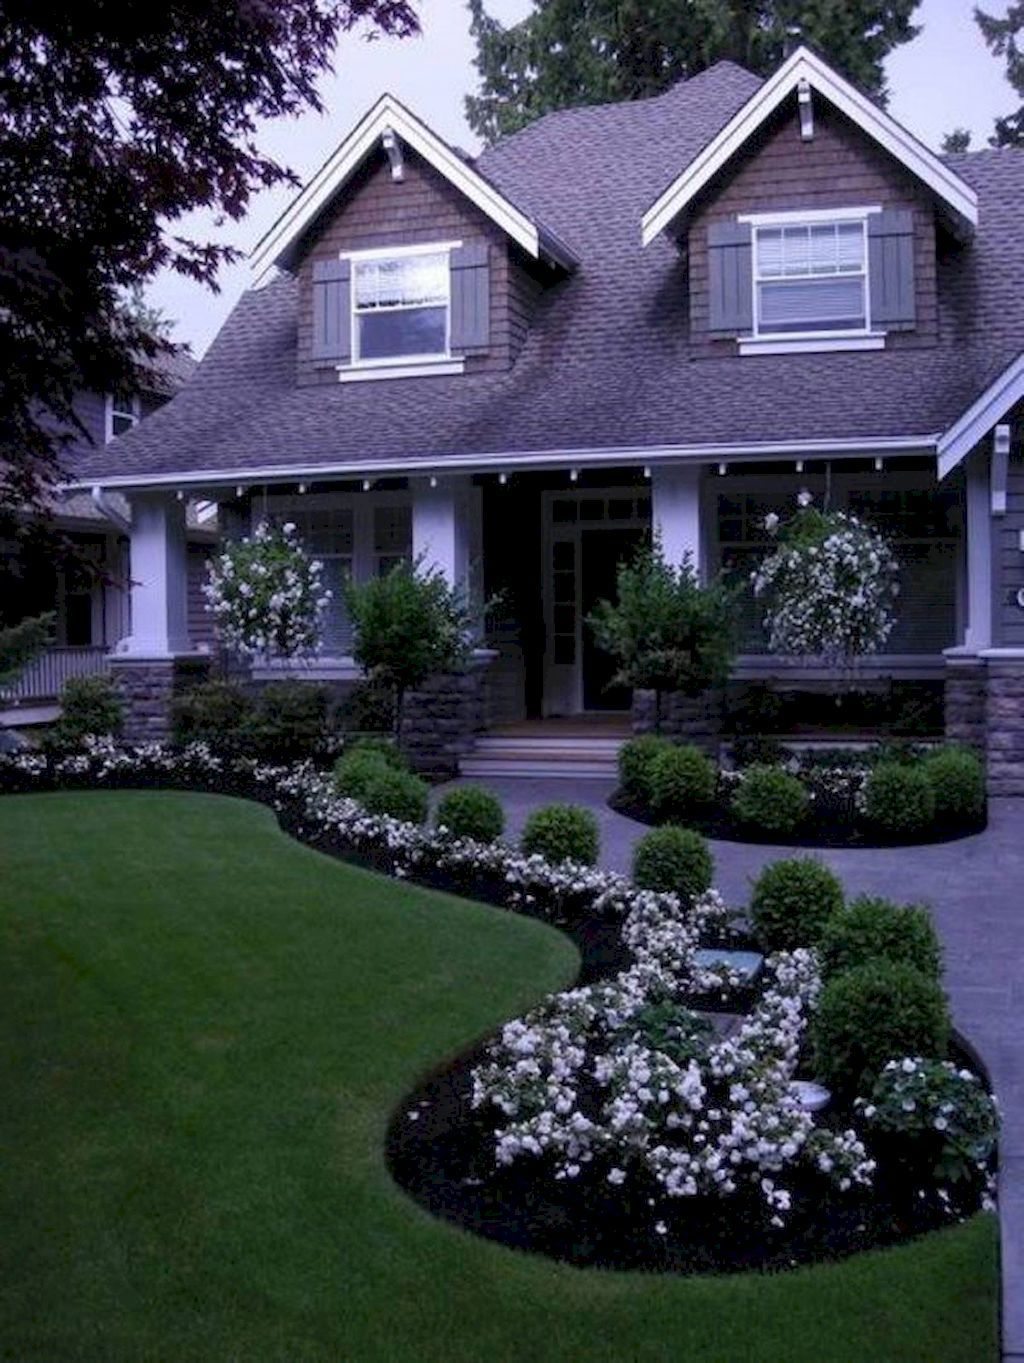 40 beautiful front yard landscaping ideas yard for Front garden landscaping